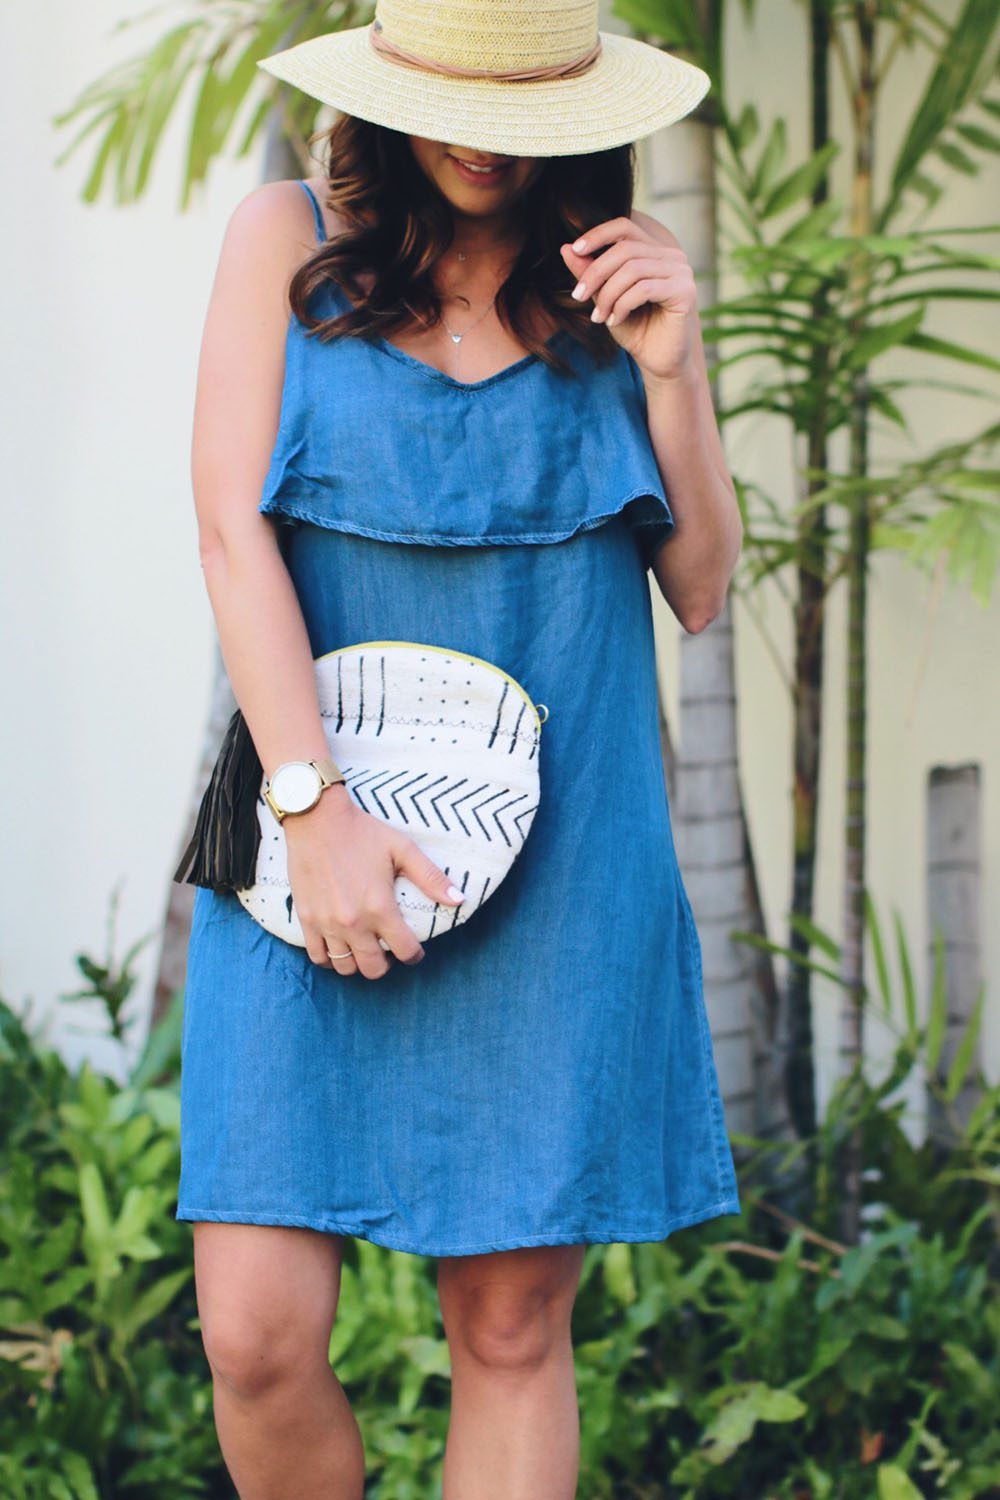 goodnight-macaroon-jean-dress-with-hat-and-clutch